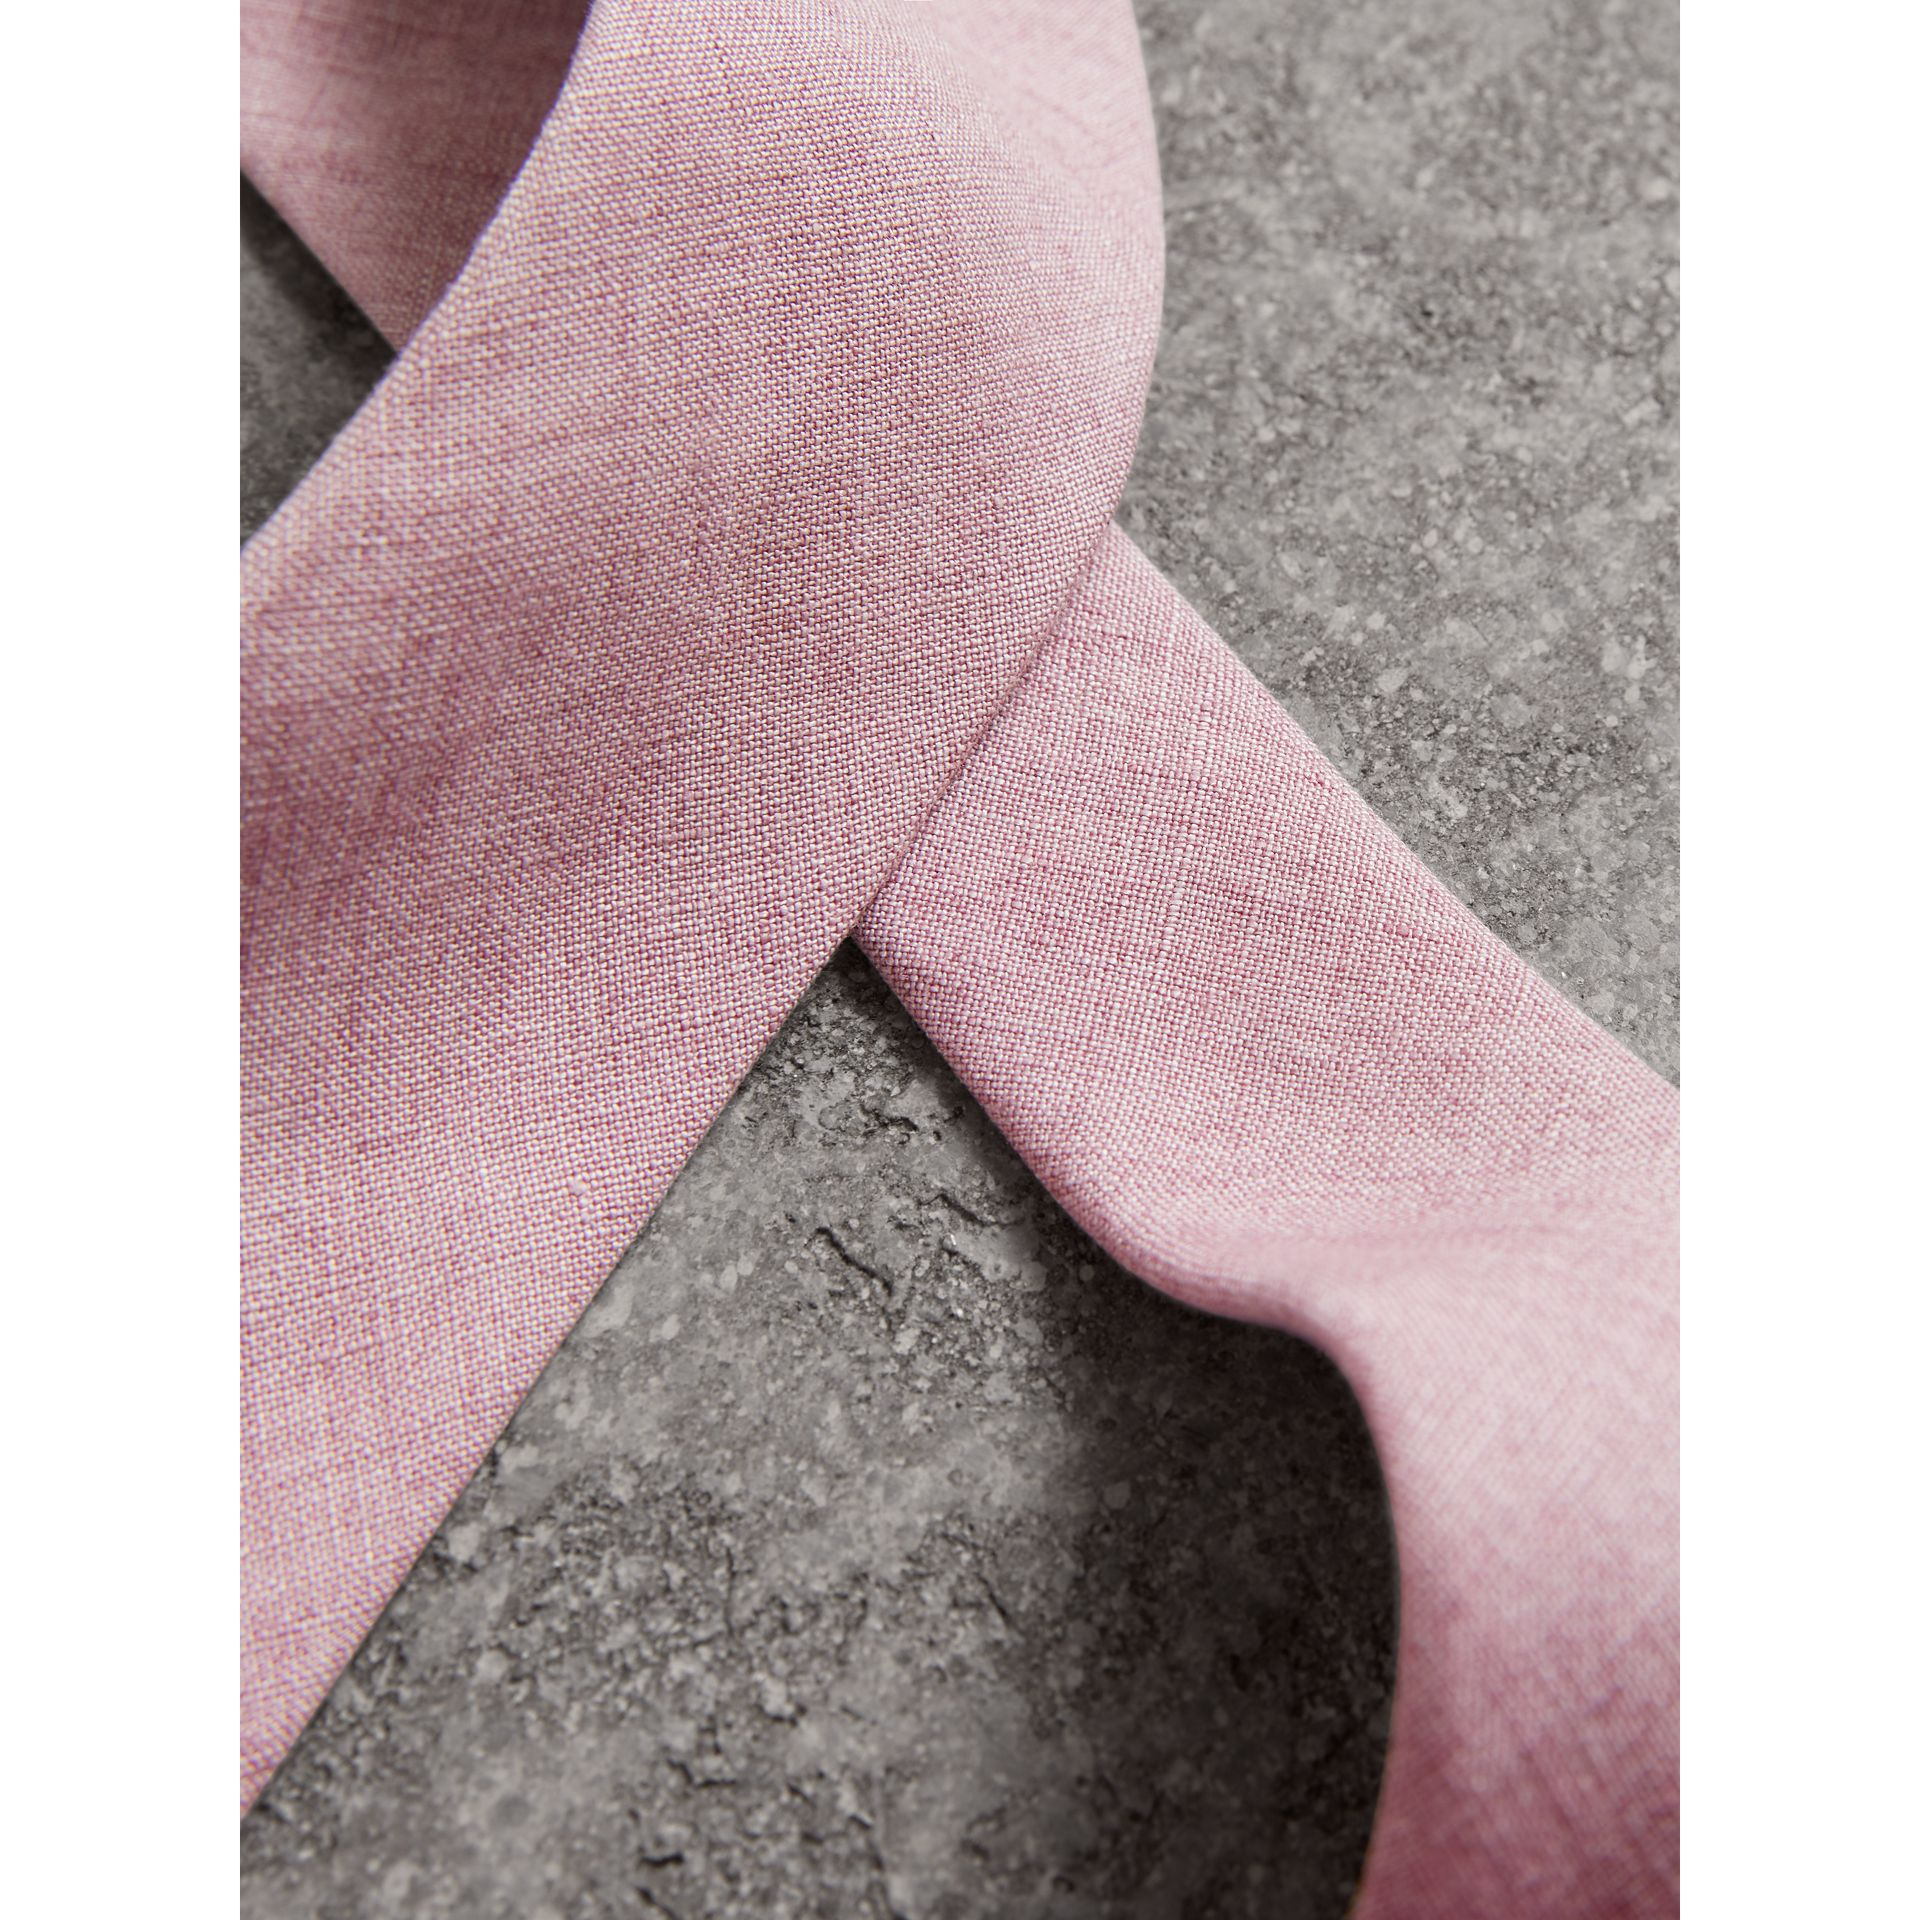 Slim Cut Linen Tie in Pink Heather - Men | Burberry United States - gallery image 1